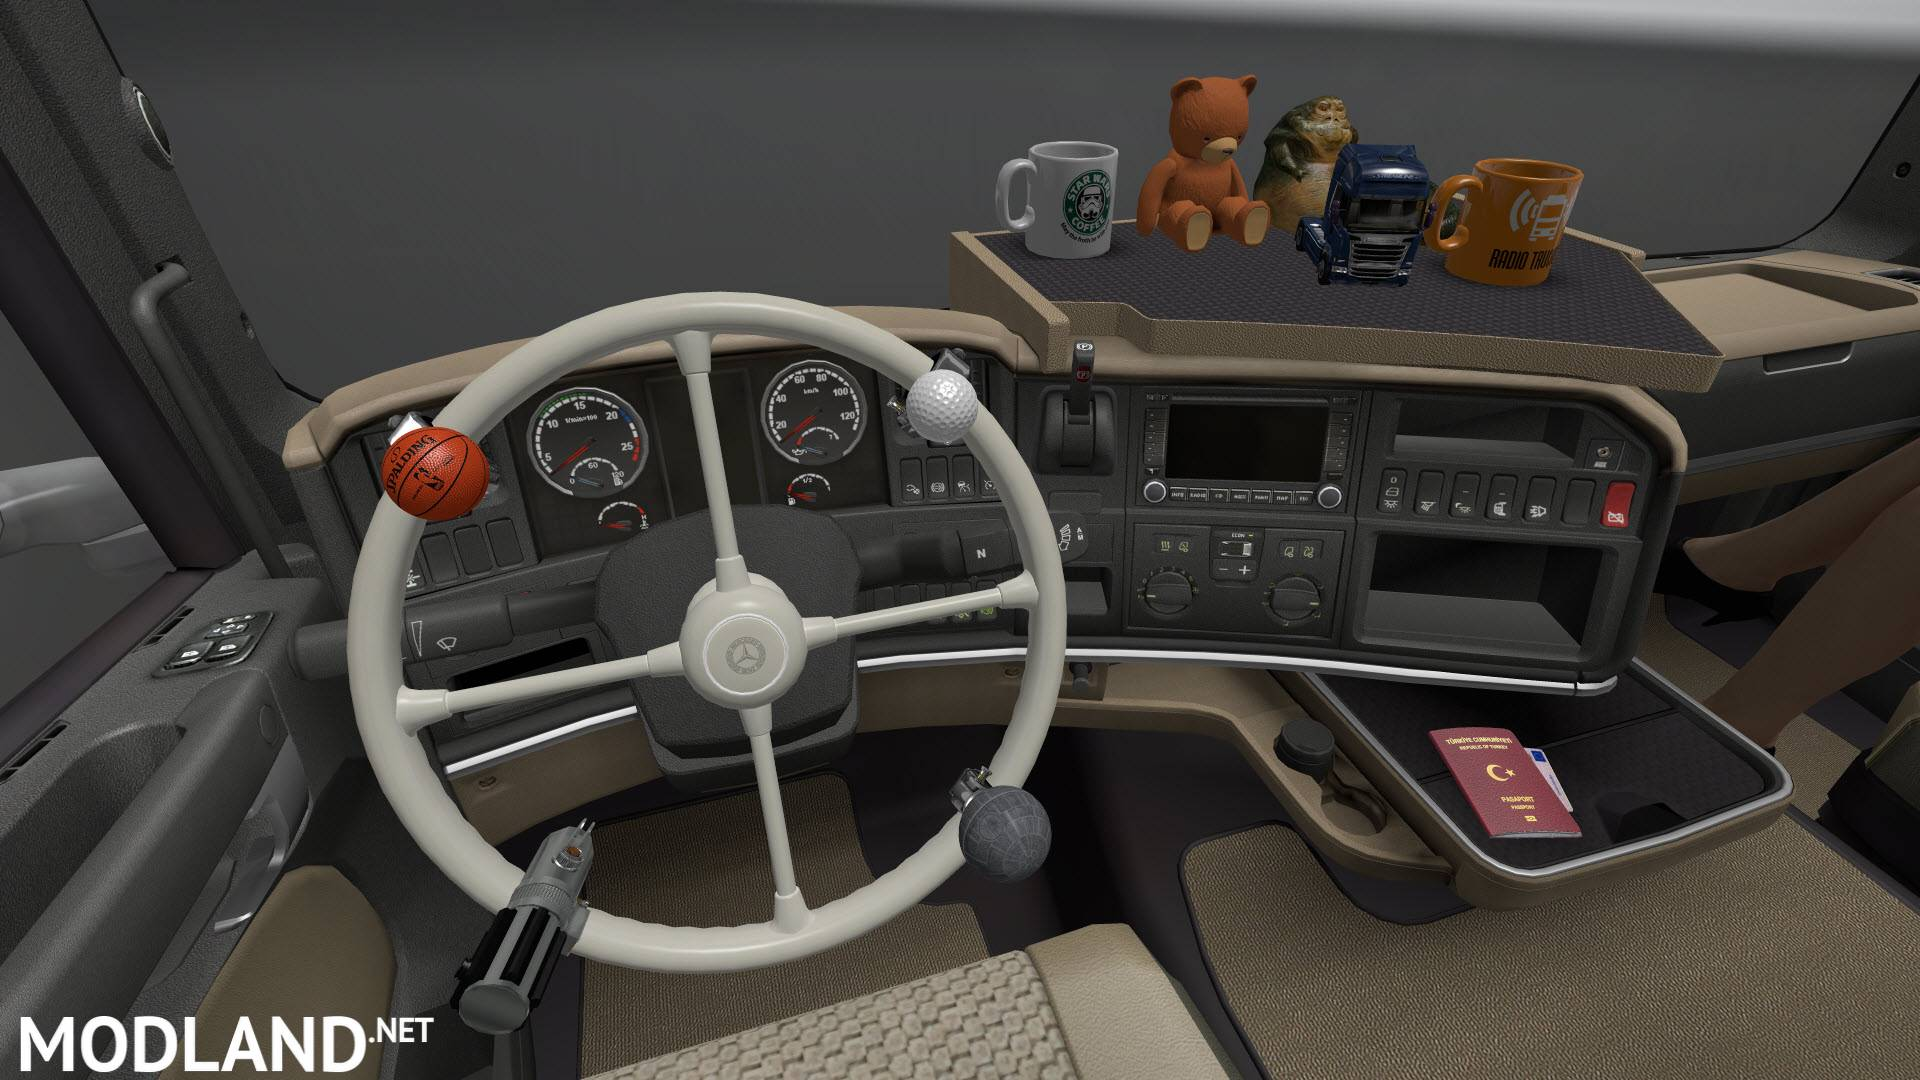 simulator truck mod for parts dlc cabin accessories mods tuning modlandnet american cabins v ats